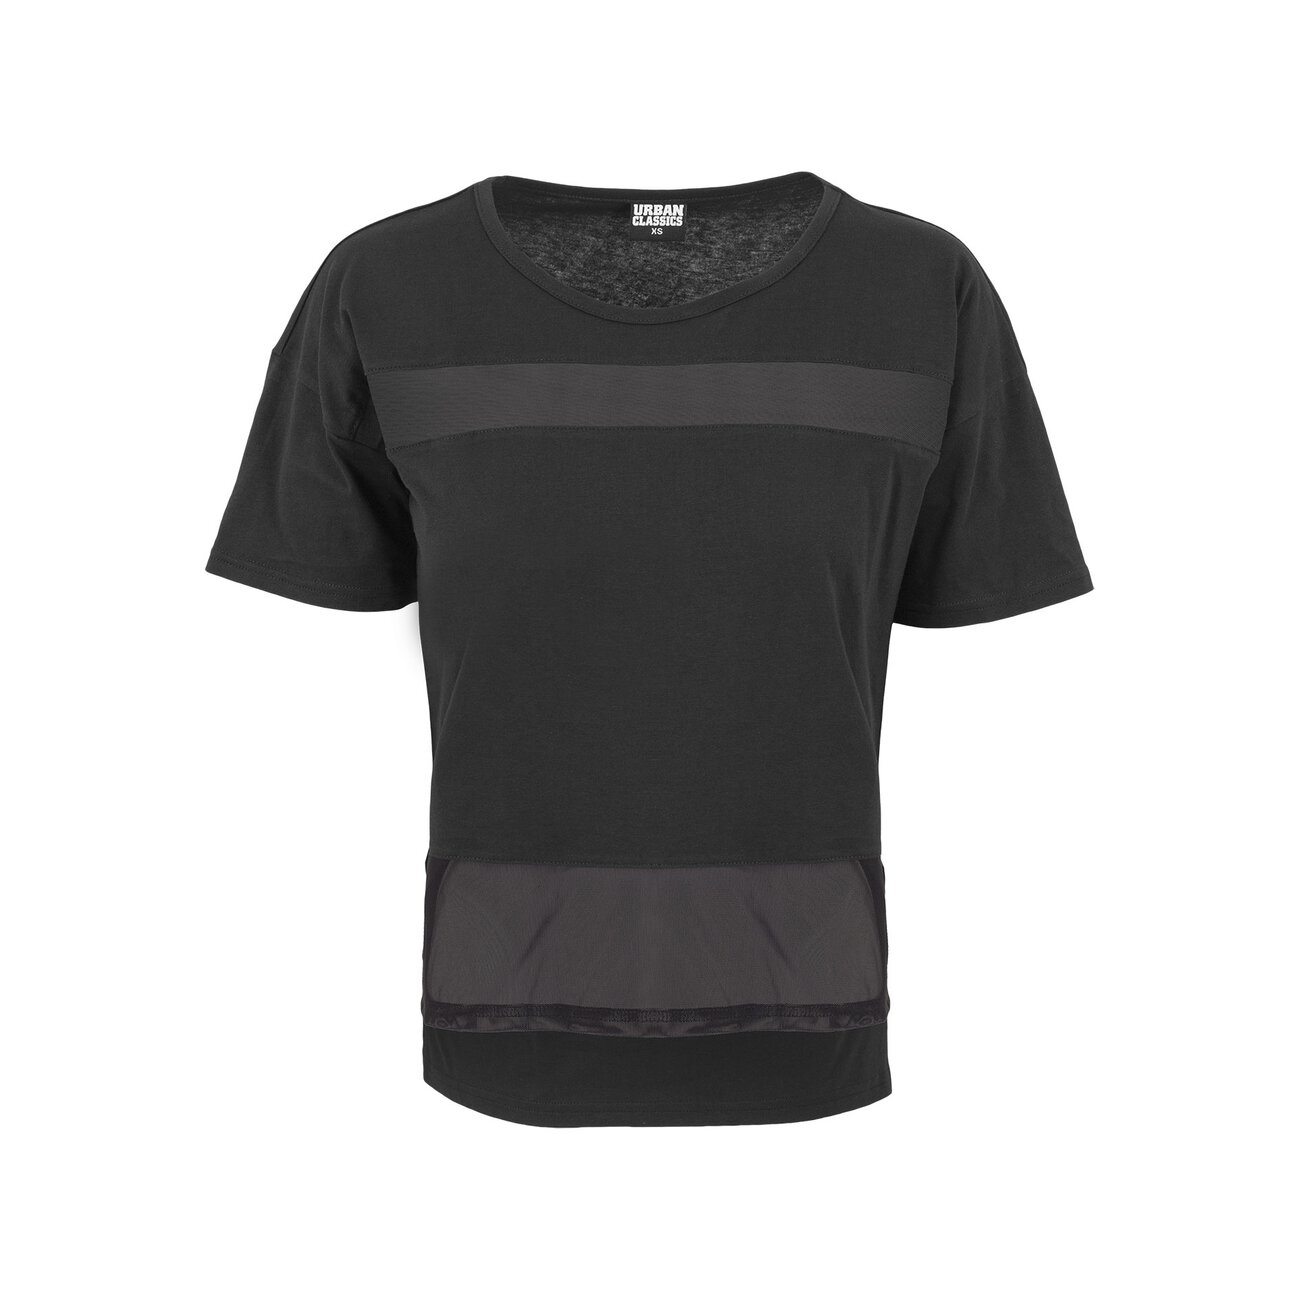 urban classics mesh t shirt damen tech netz shirt tb 1181. Black Bedroom Furniture Sets. Home Design Ideas